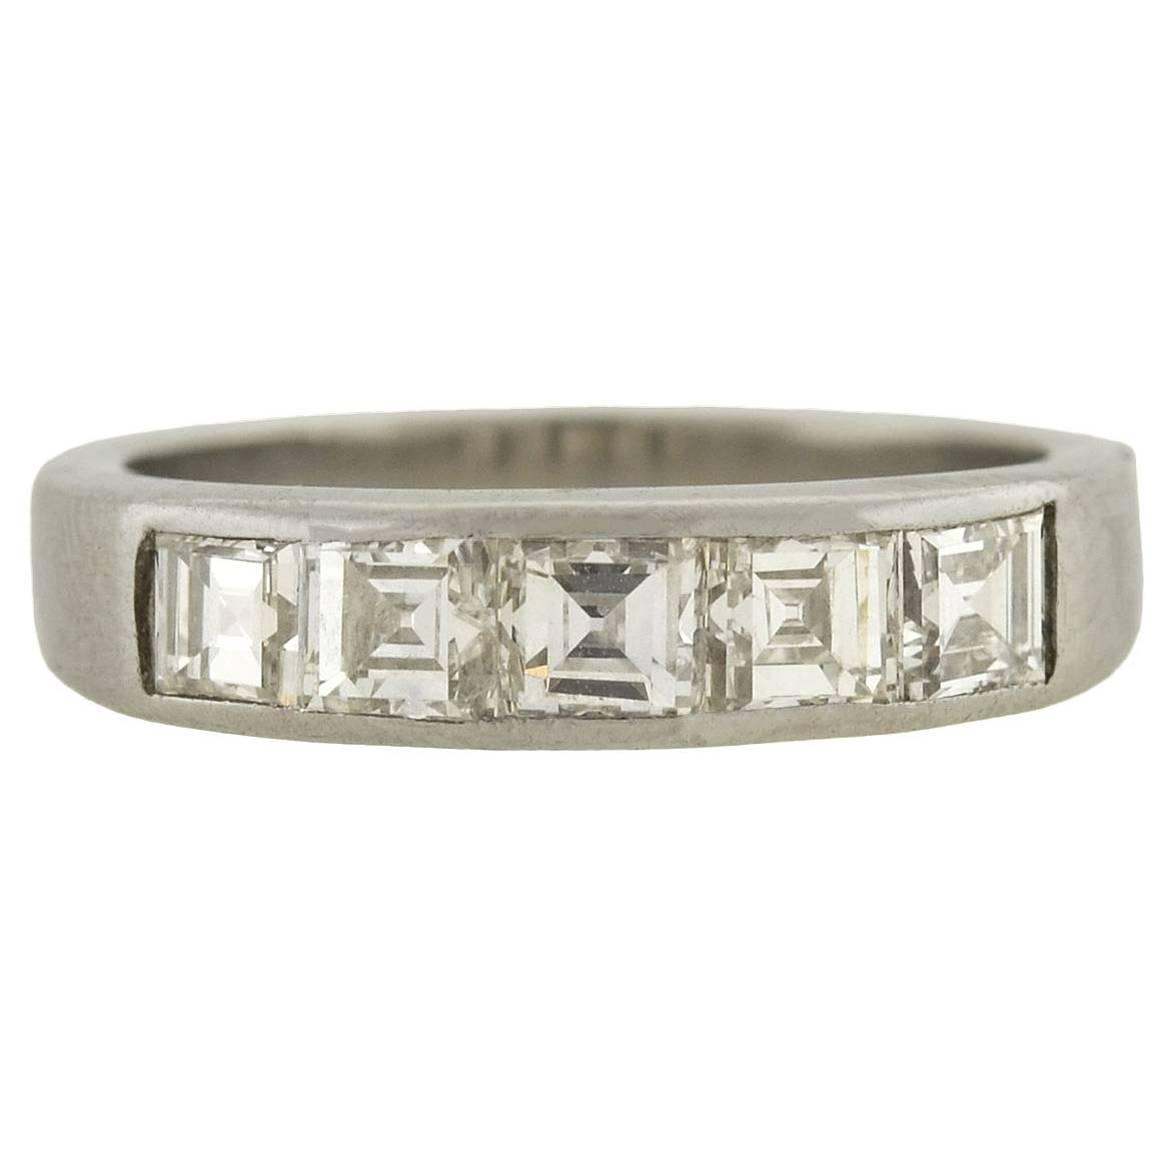 1960s Diamond Platinum Square Cut Half Band Ring For Sale at 1stdibs